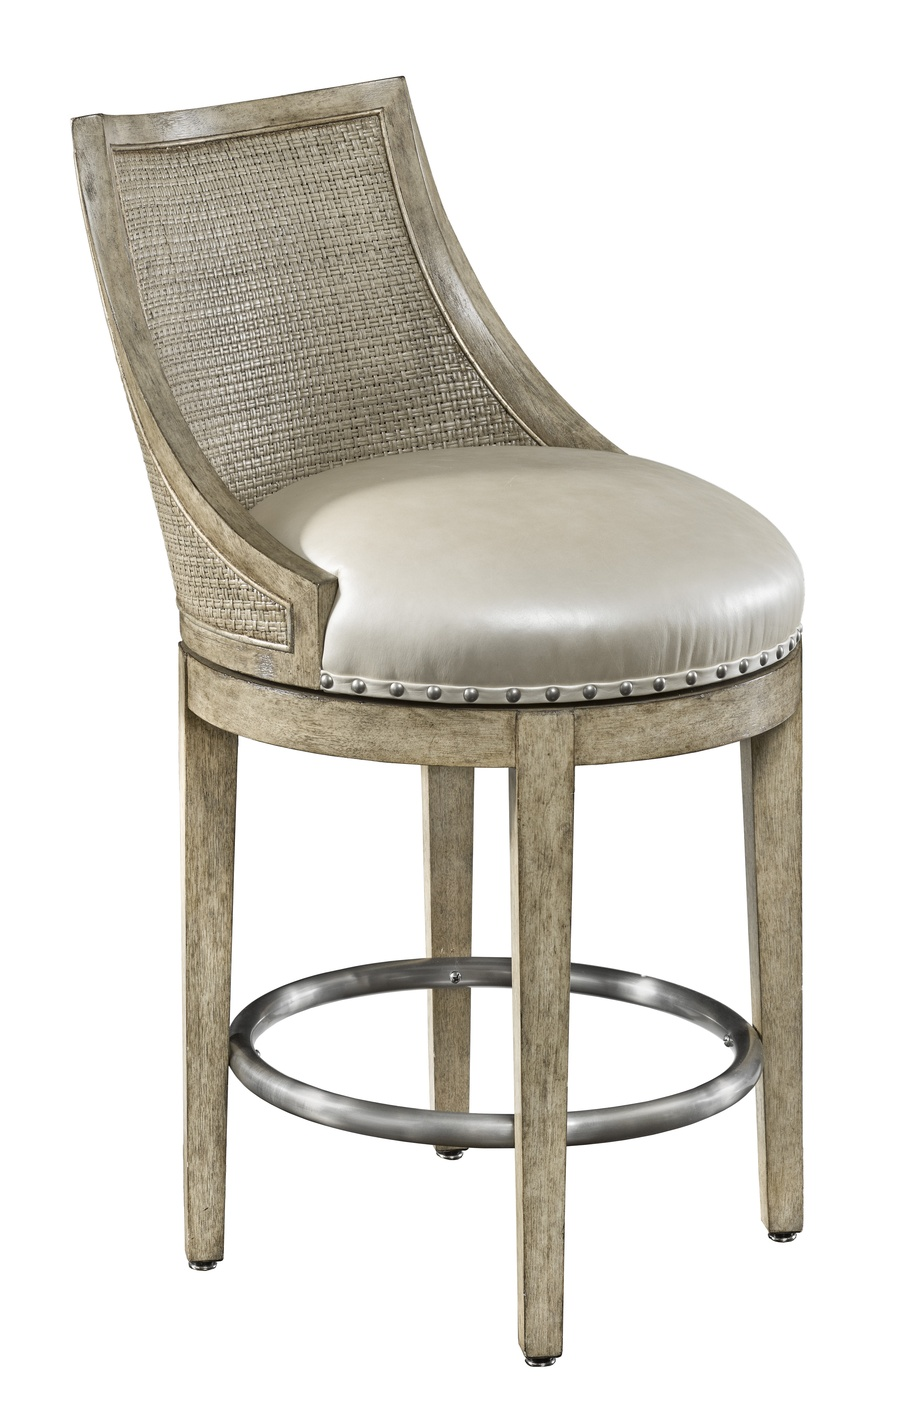 Palms Counter Stoolshown with:Tight SeatFrame and Raffia back in Dapple finish withSilver Cloud Leaffinish trimSpaced Pewter nailhead frame trim over tapeStainless Steel footrest